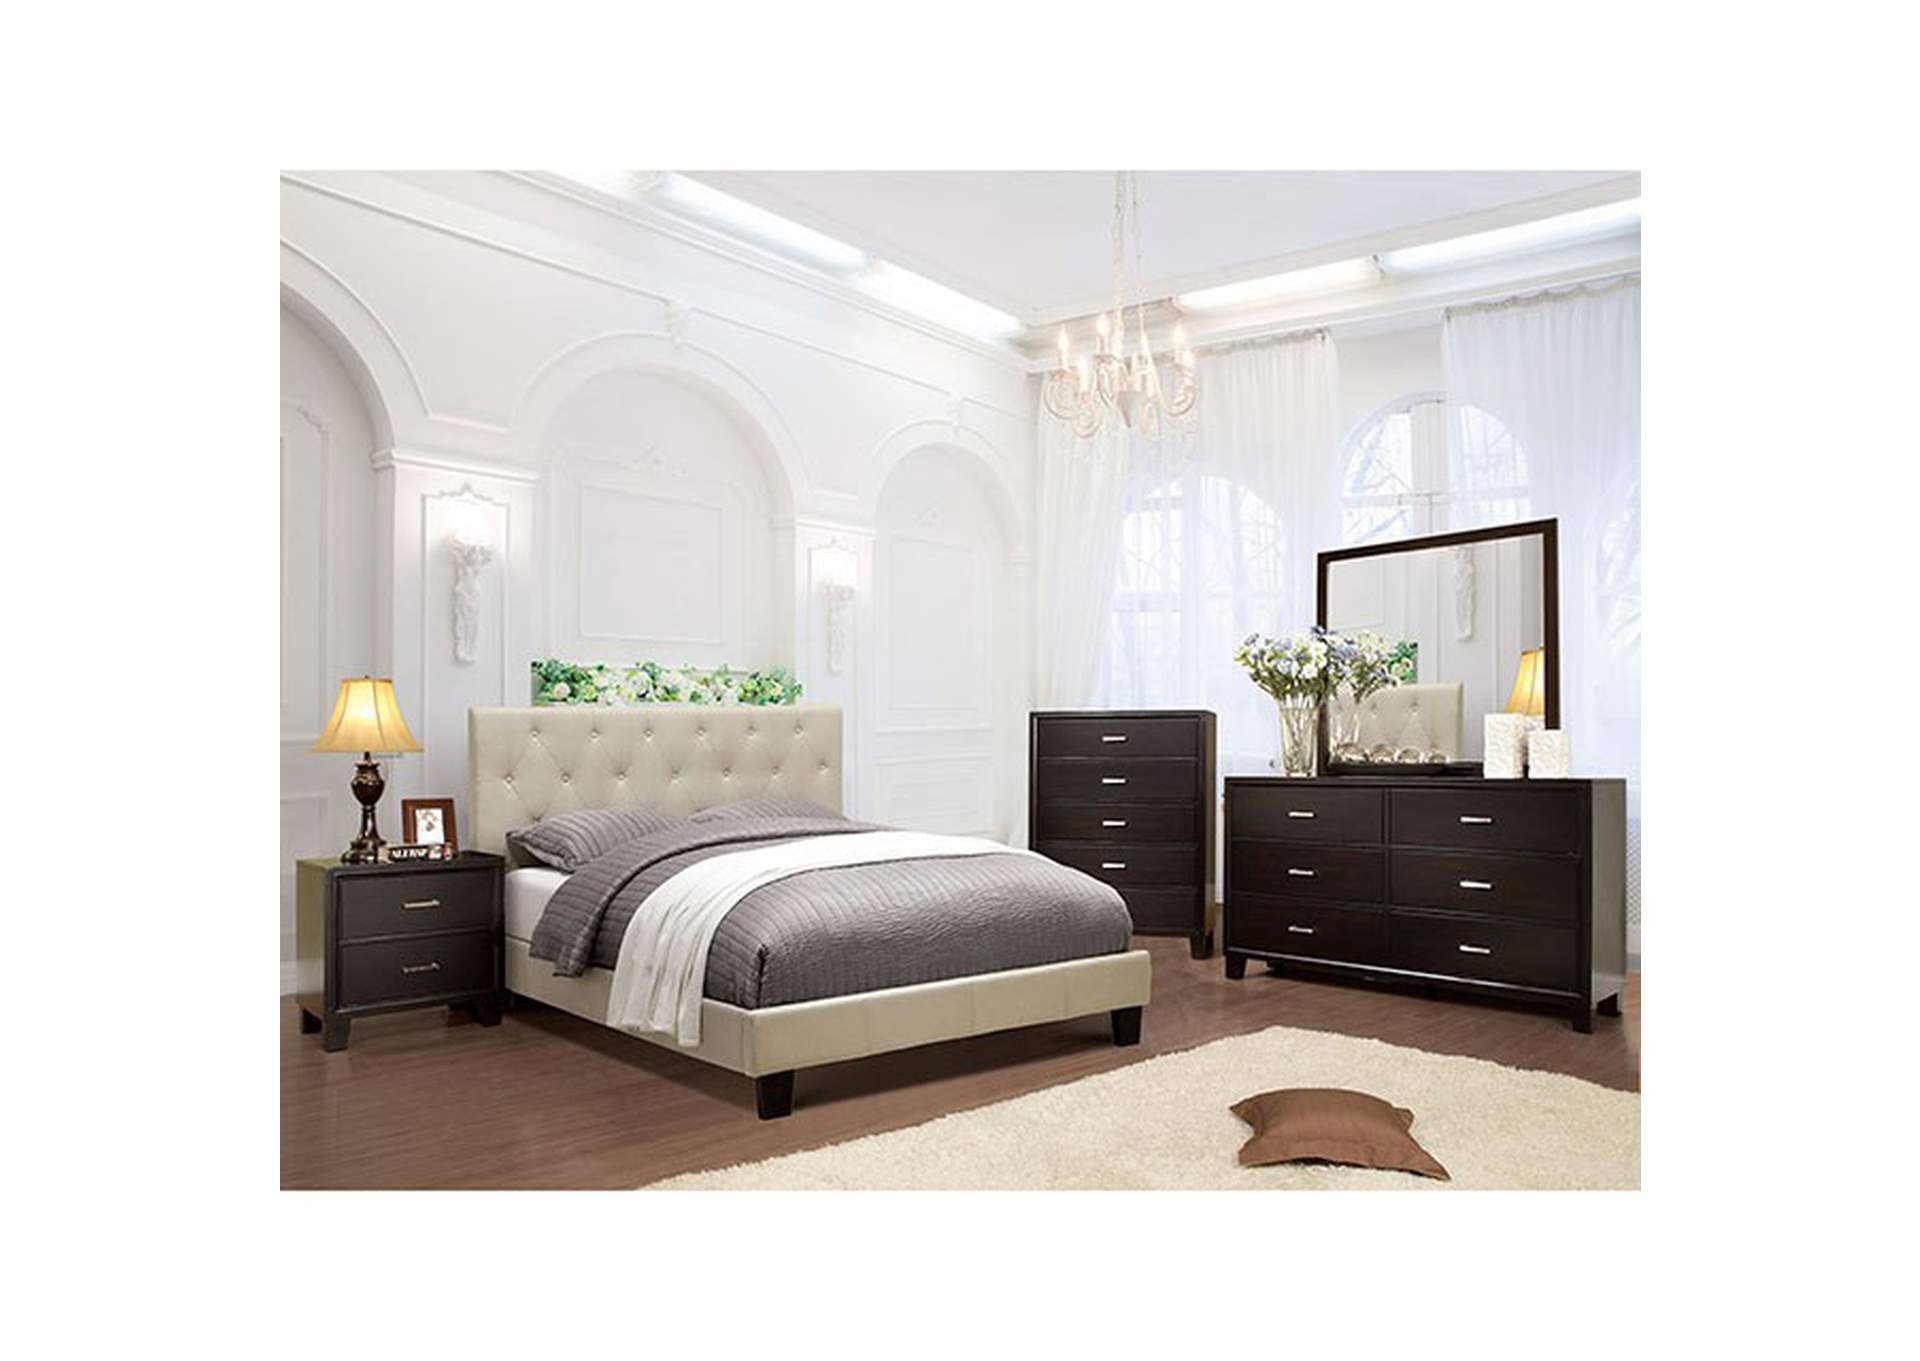 Leeroy Ivory Queen Bed,Furniture of America